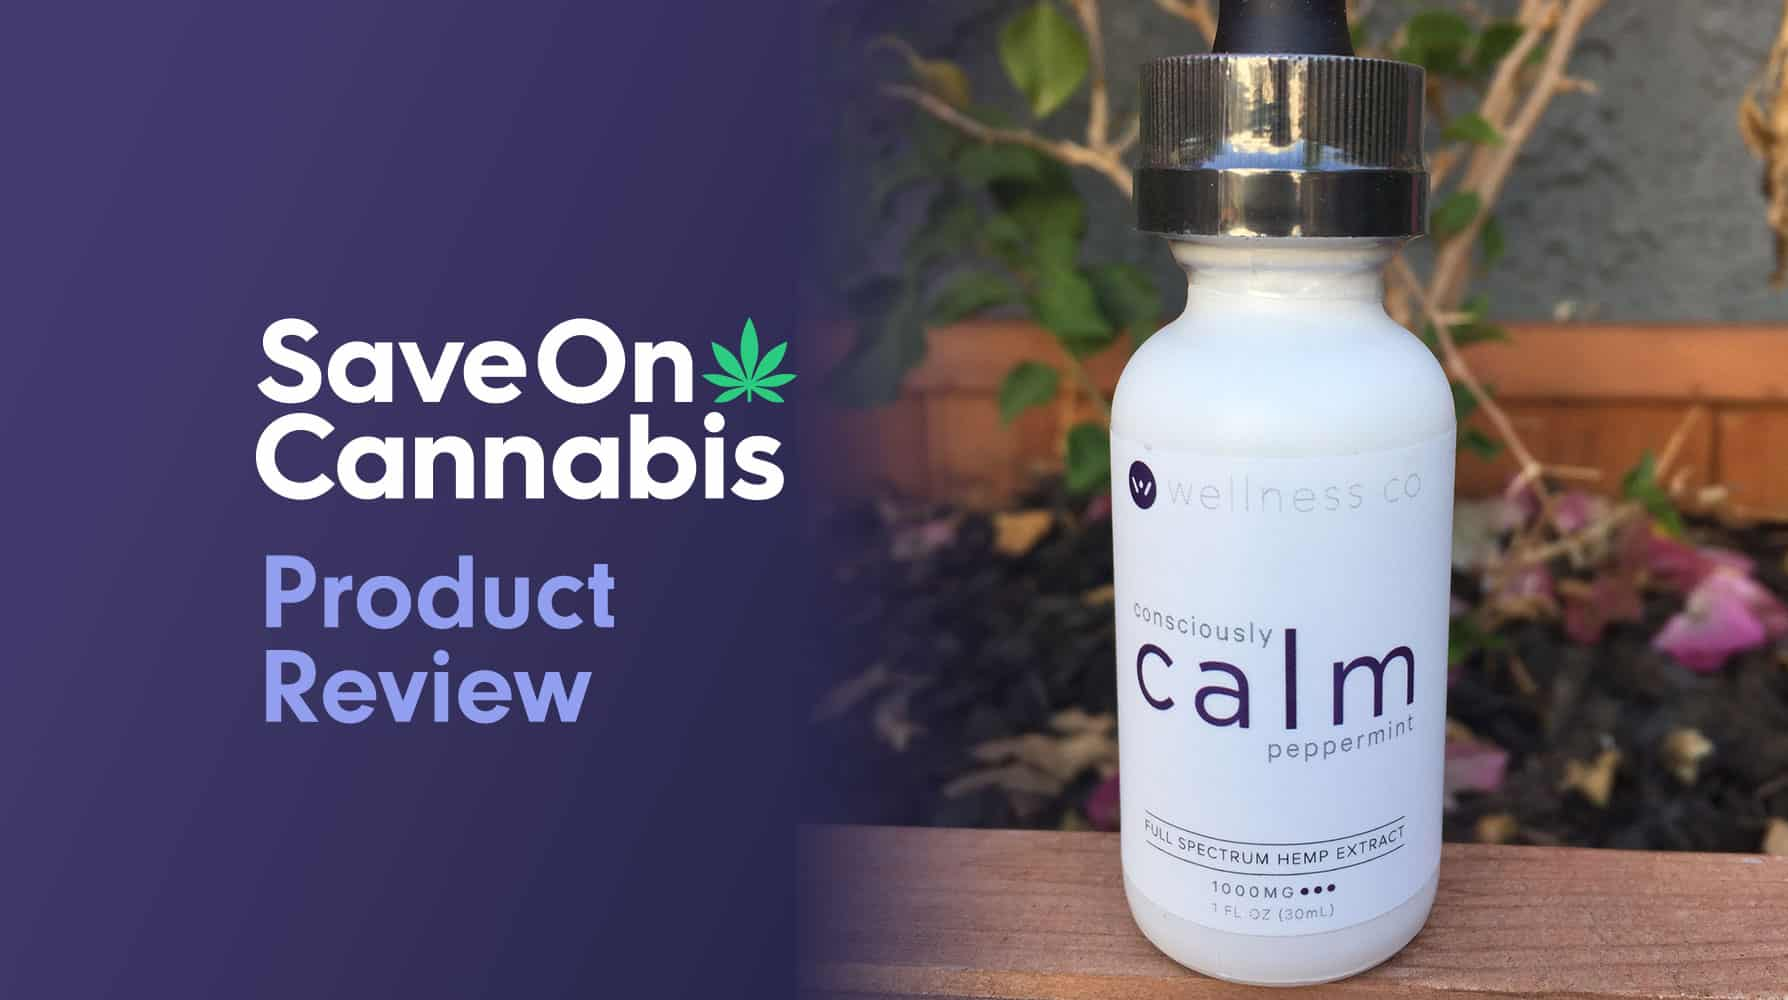 calm by wellness hemp cbd oil tincture peppermint 1000 mg save on cannabis website